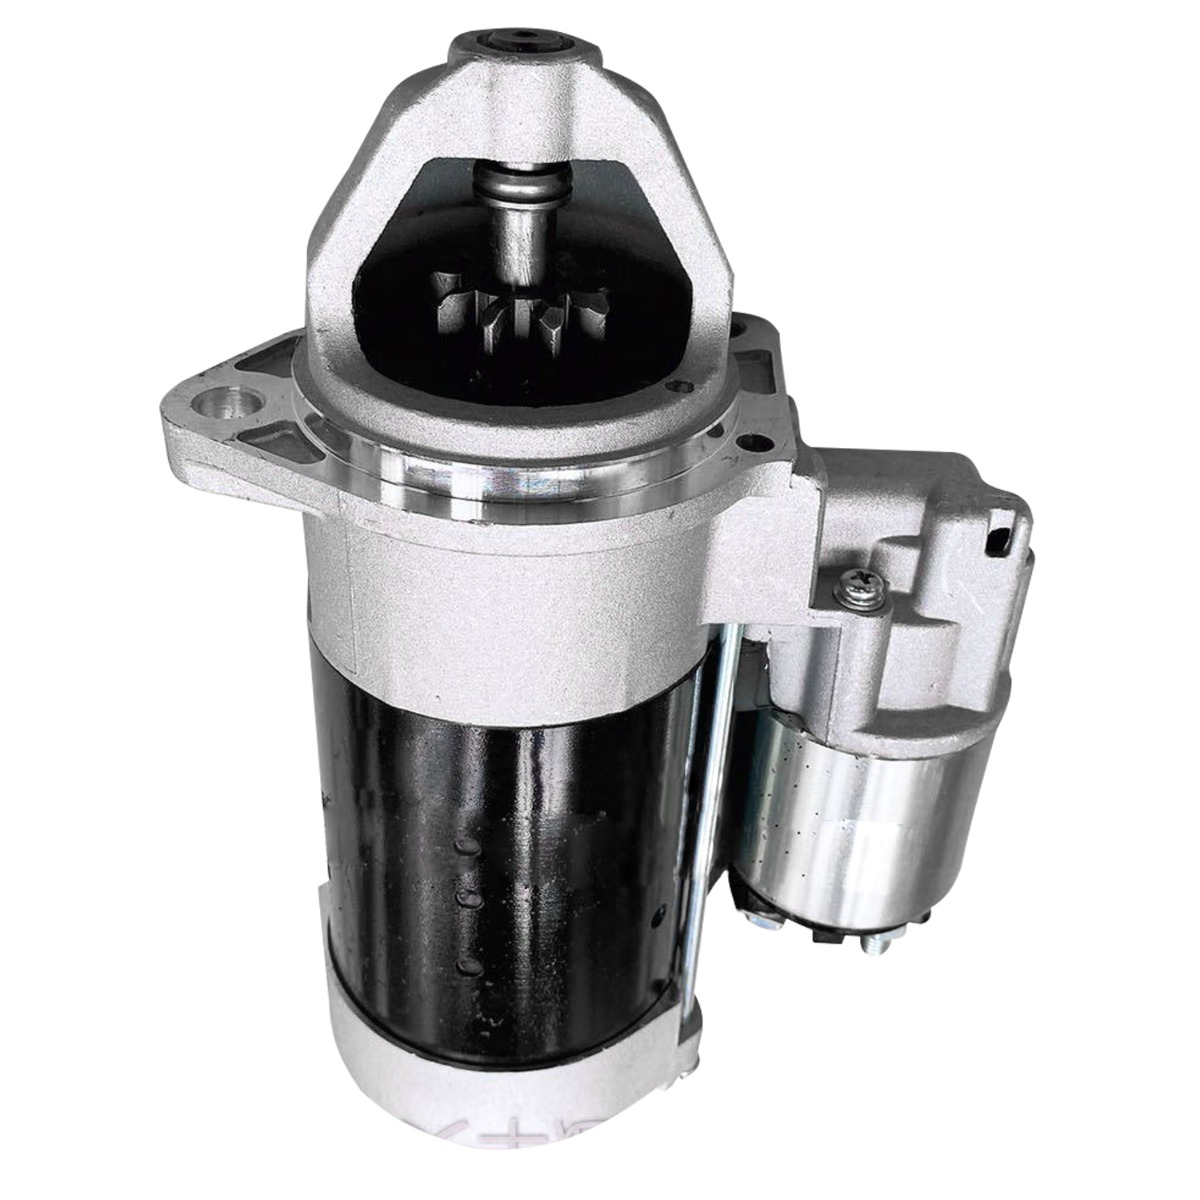 Starter 0 001 223 016 PLGR CW 2.6KW 9Teeth 12V Compatible with ABG